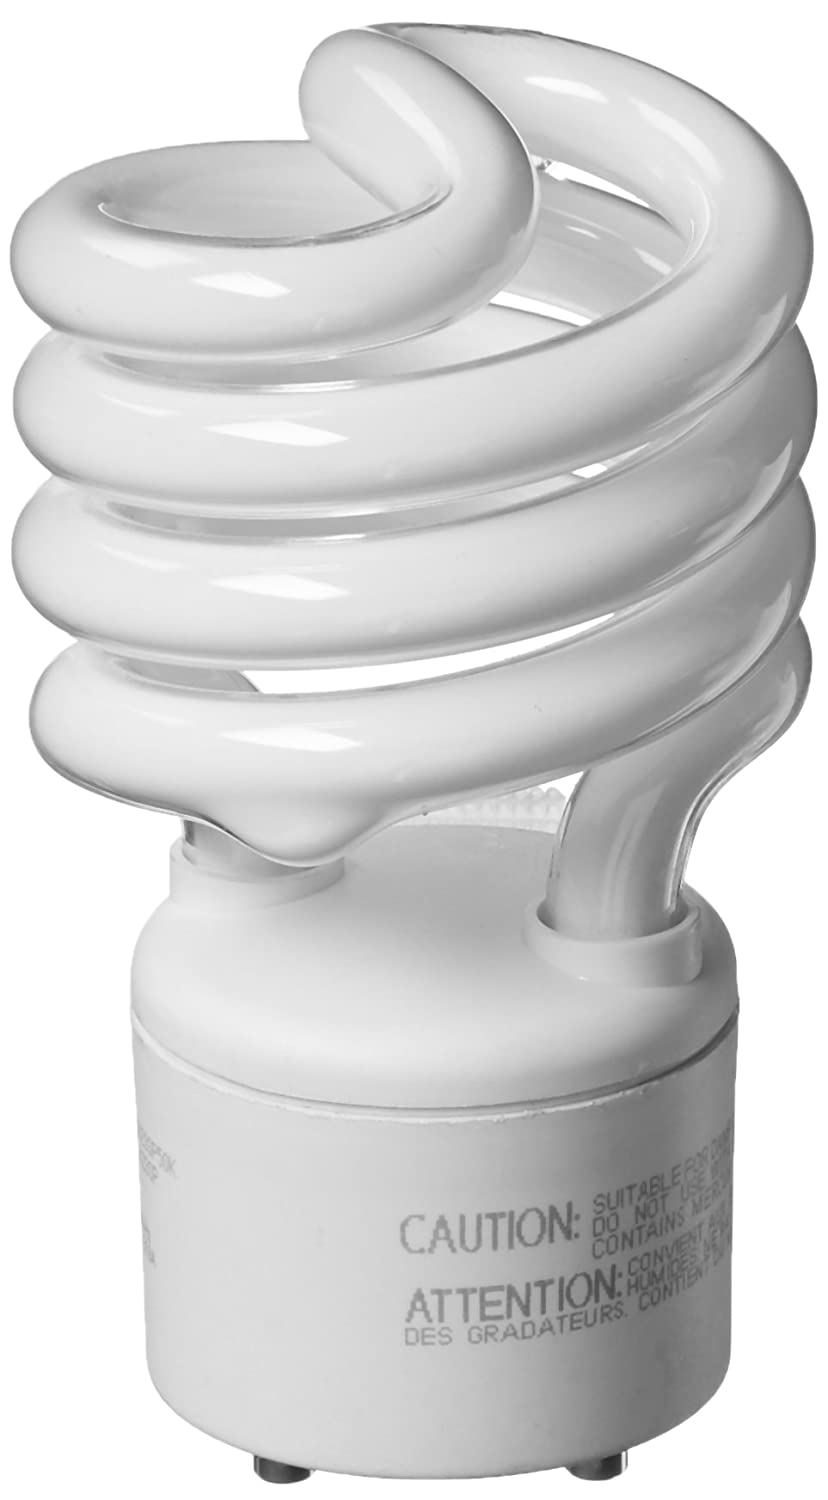 TCP 33123SP50K CFL Spring Lamp - 100 Watt Equivalent (Only 23w used!) Daylight White (5000K) General Purpose Spiral Light Bulb - GU24 Base